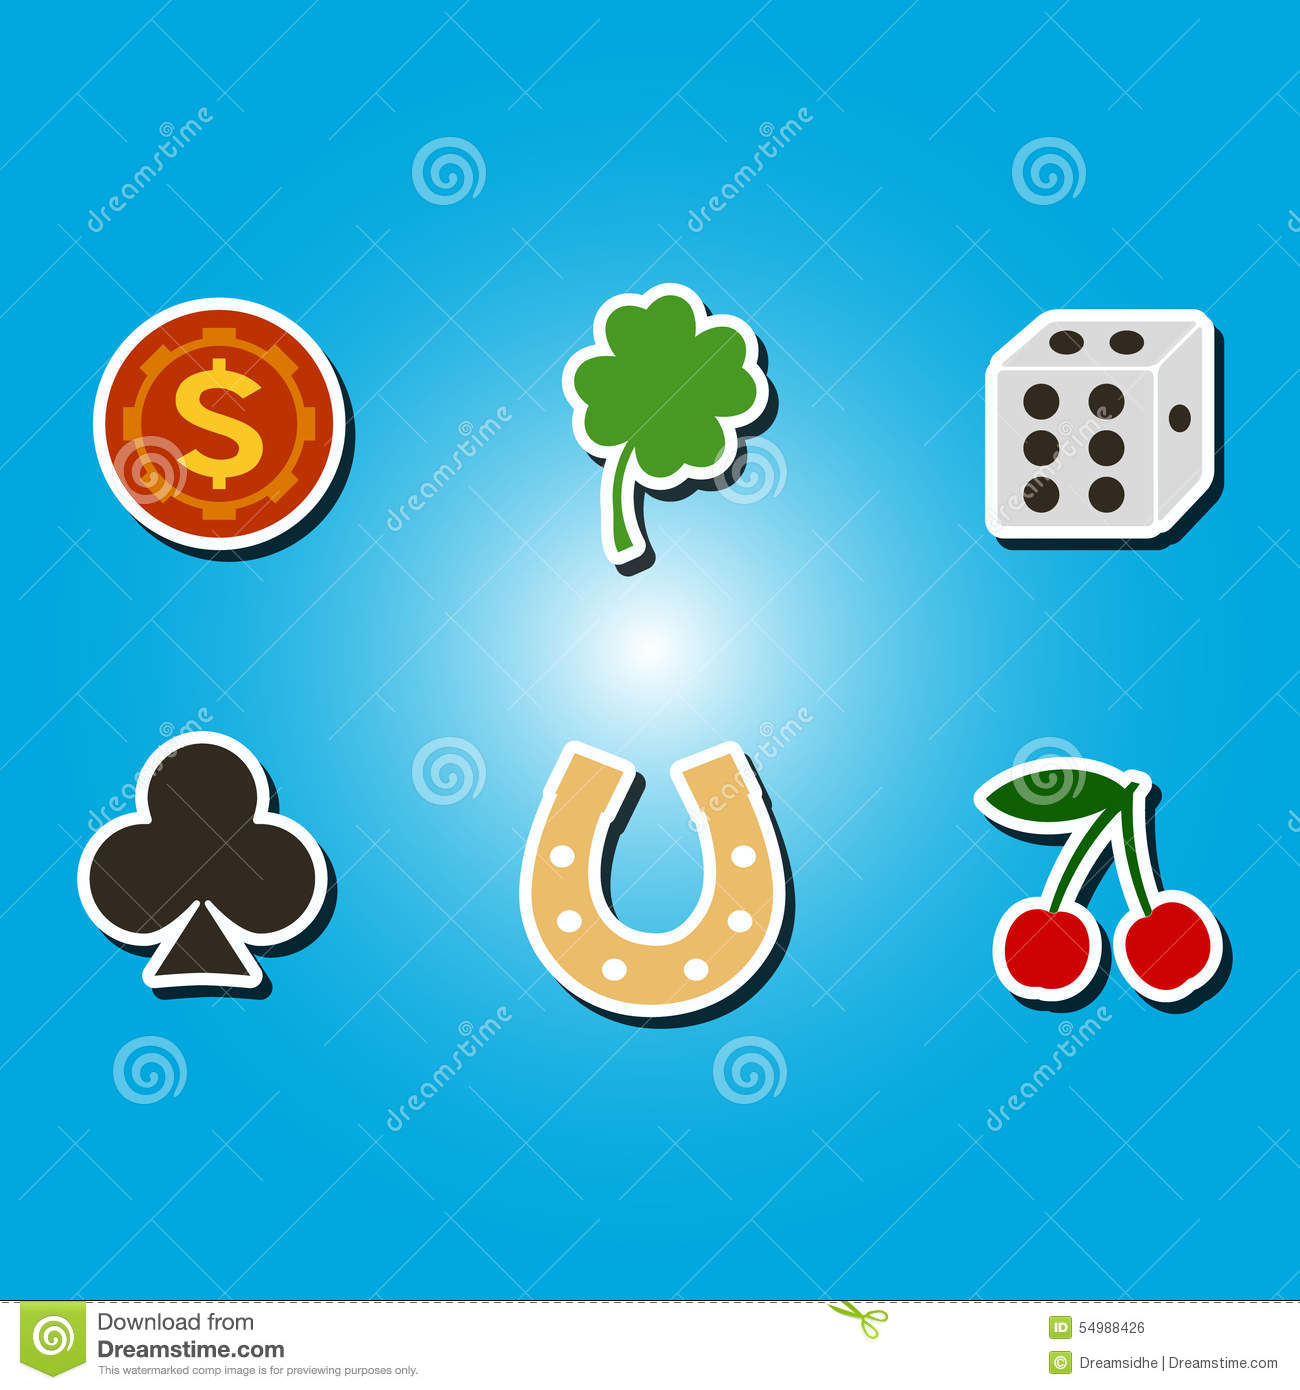 Set of color icons with symbols of gambling